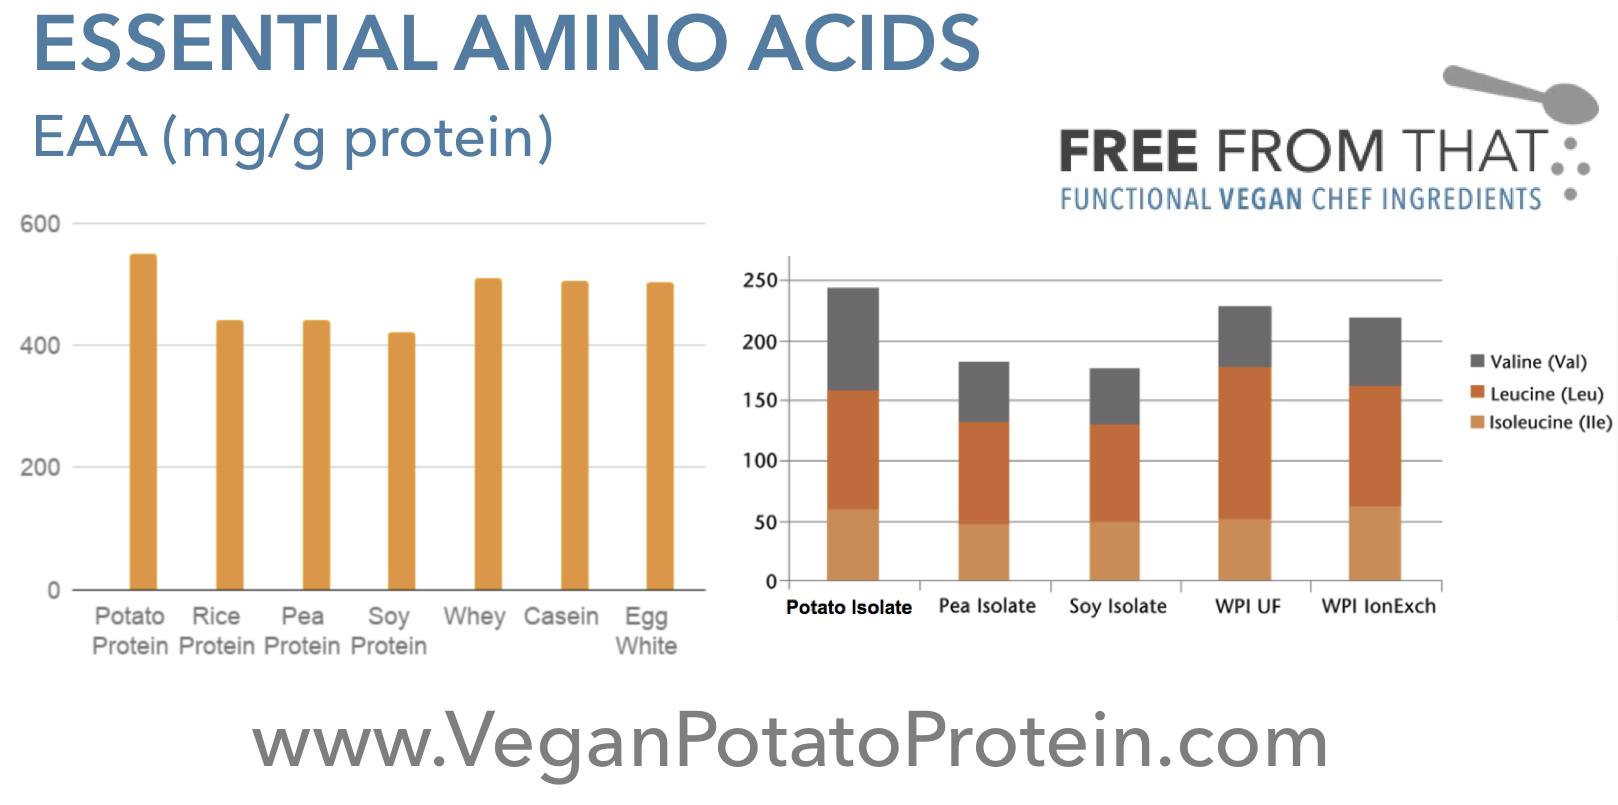 potato-protein-essential-amino-acids.jpg